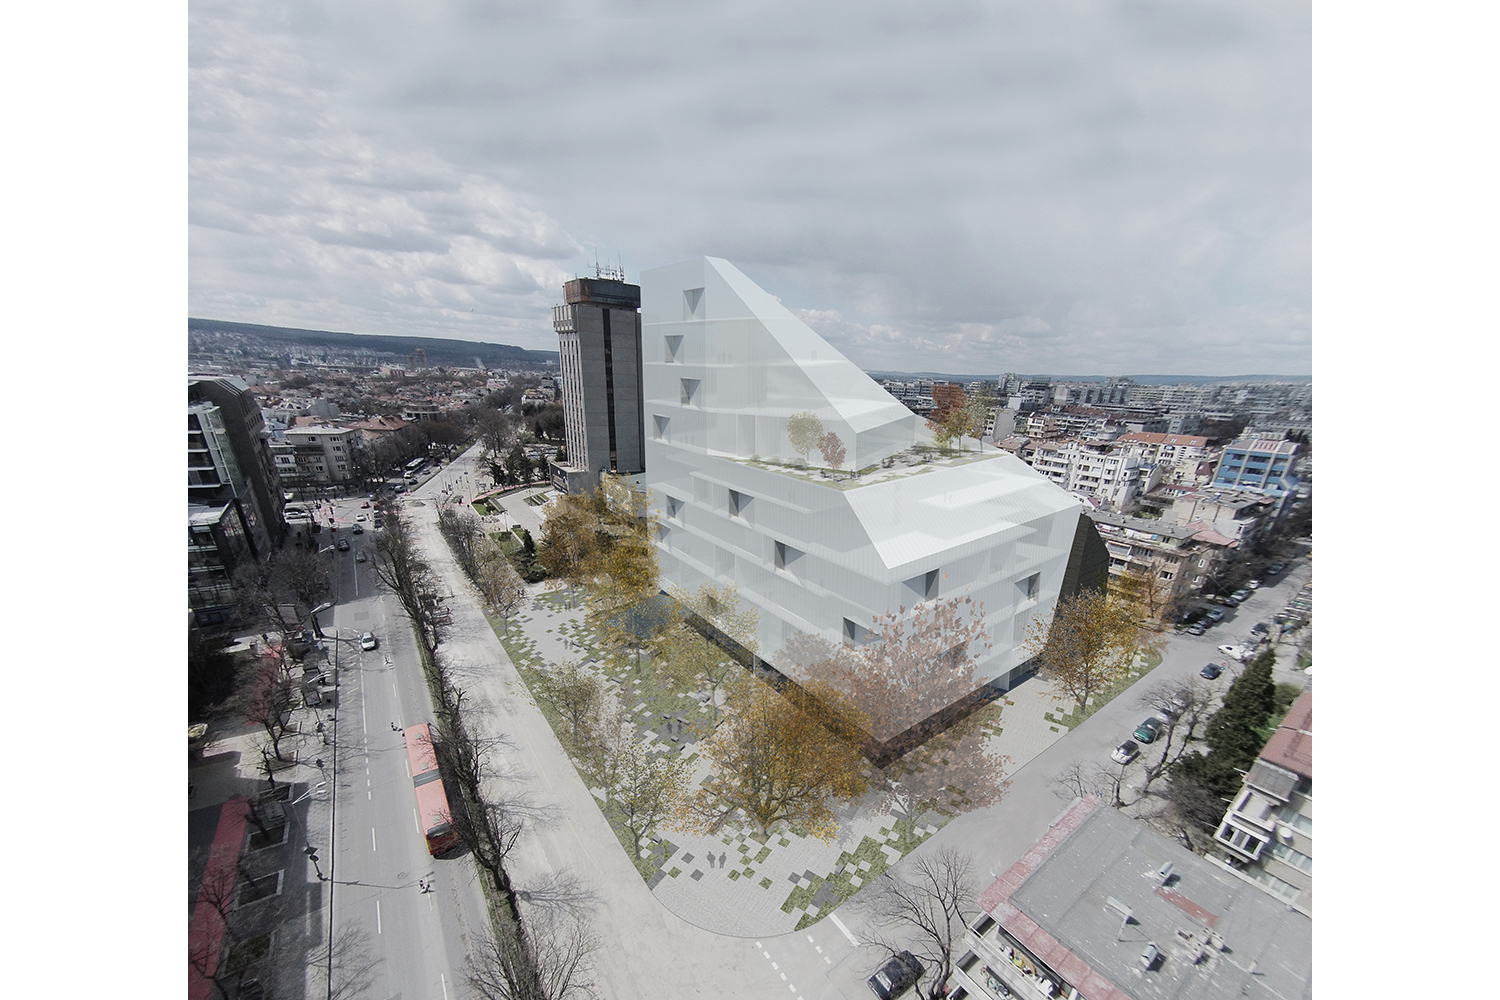 Varna Library_Exterior_Aerial View_s.jpg